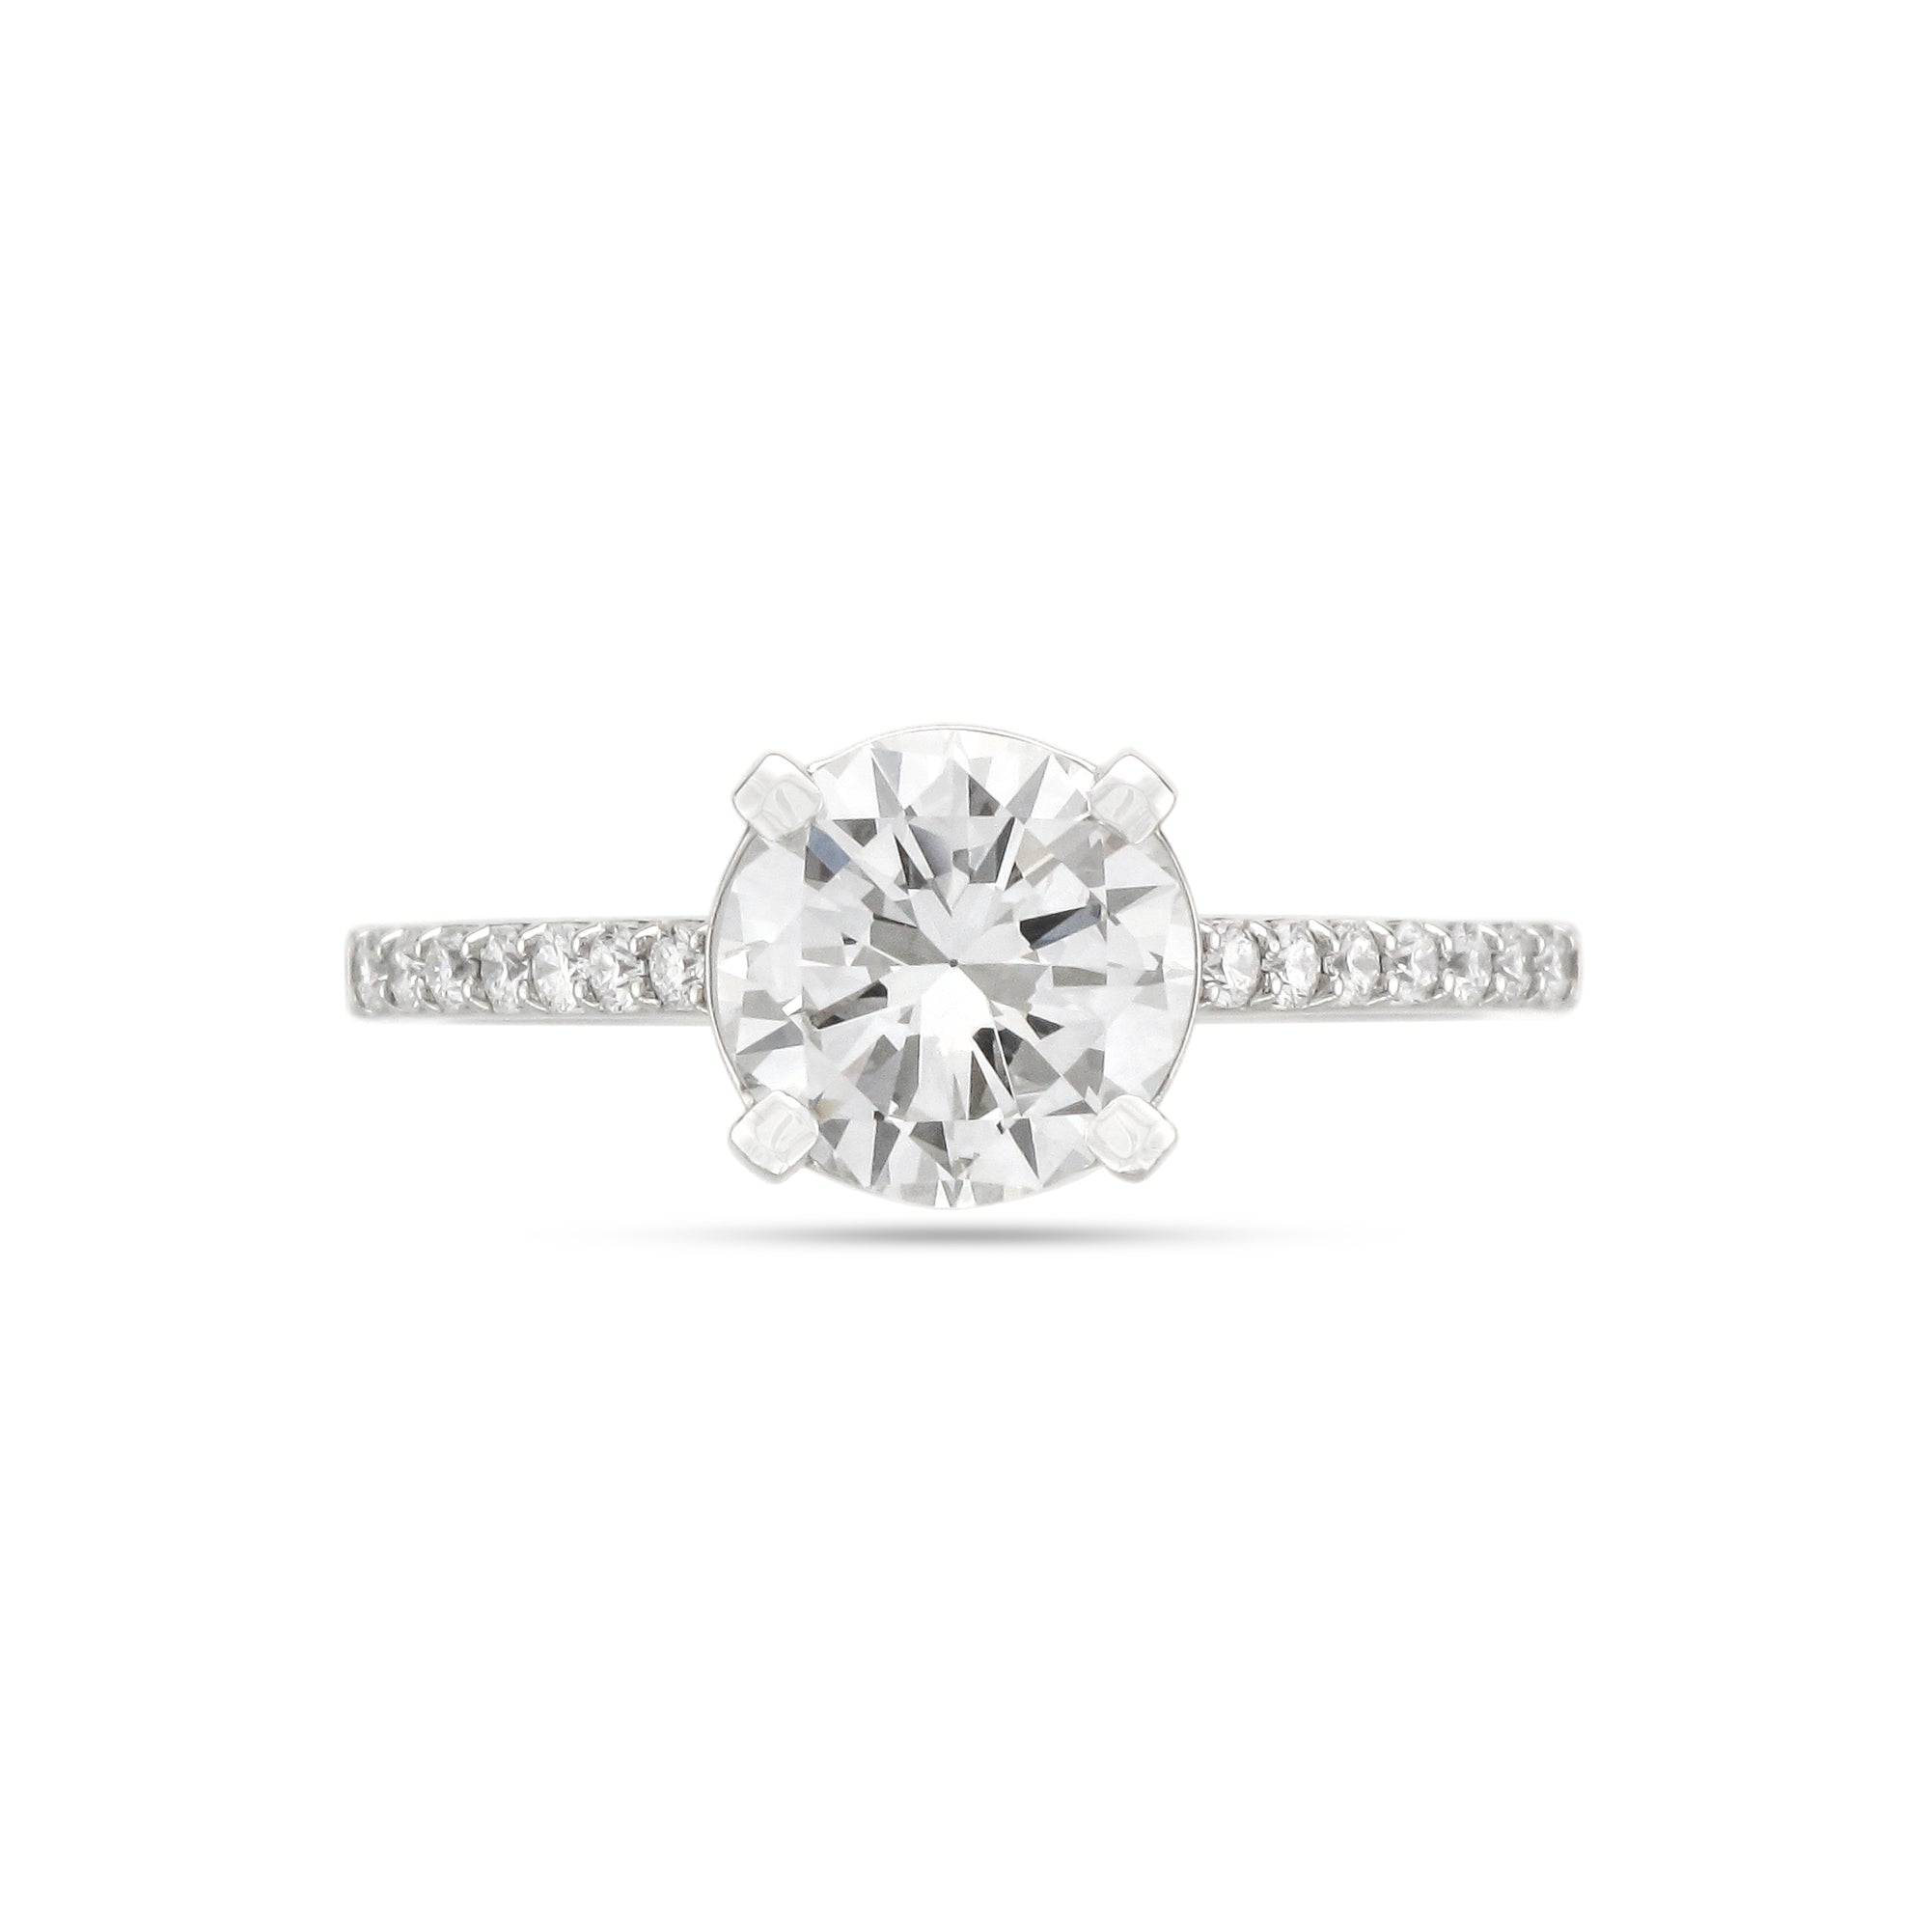 1.54ct Brilliant-Cut Diamond Engagement Ring